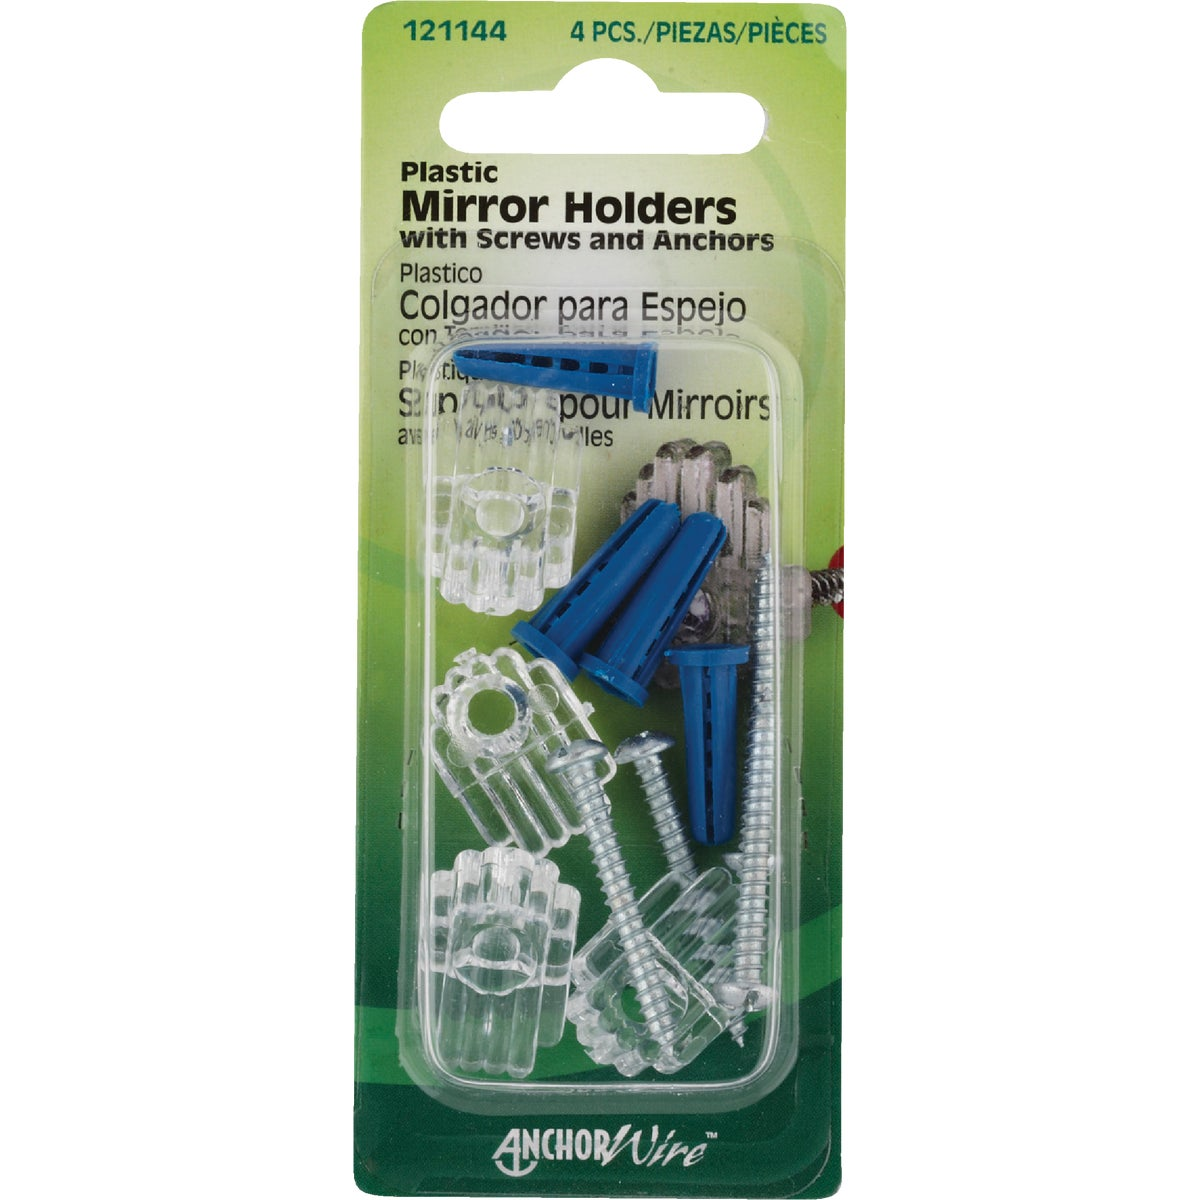 MIRROR HOLDER - 121144 by Hillman Fastener